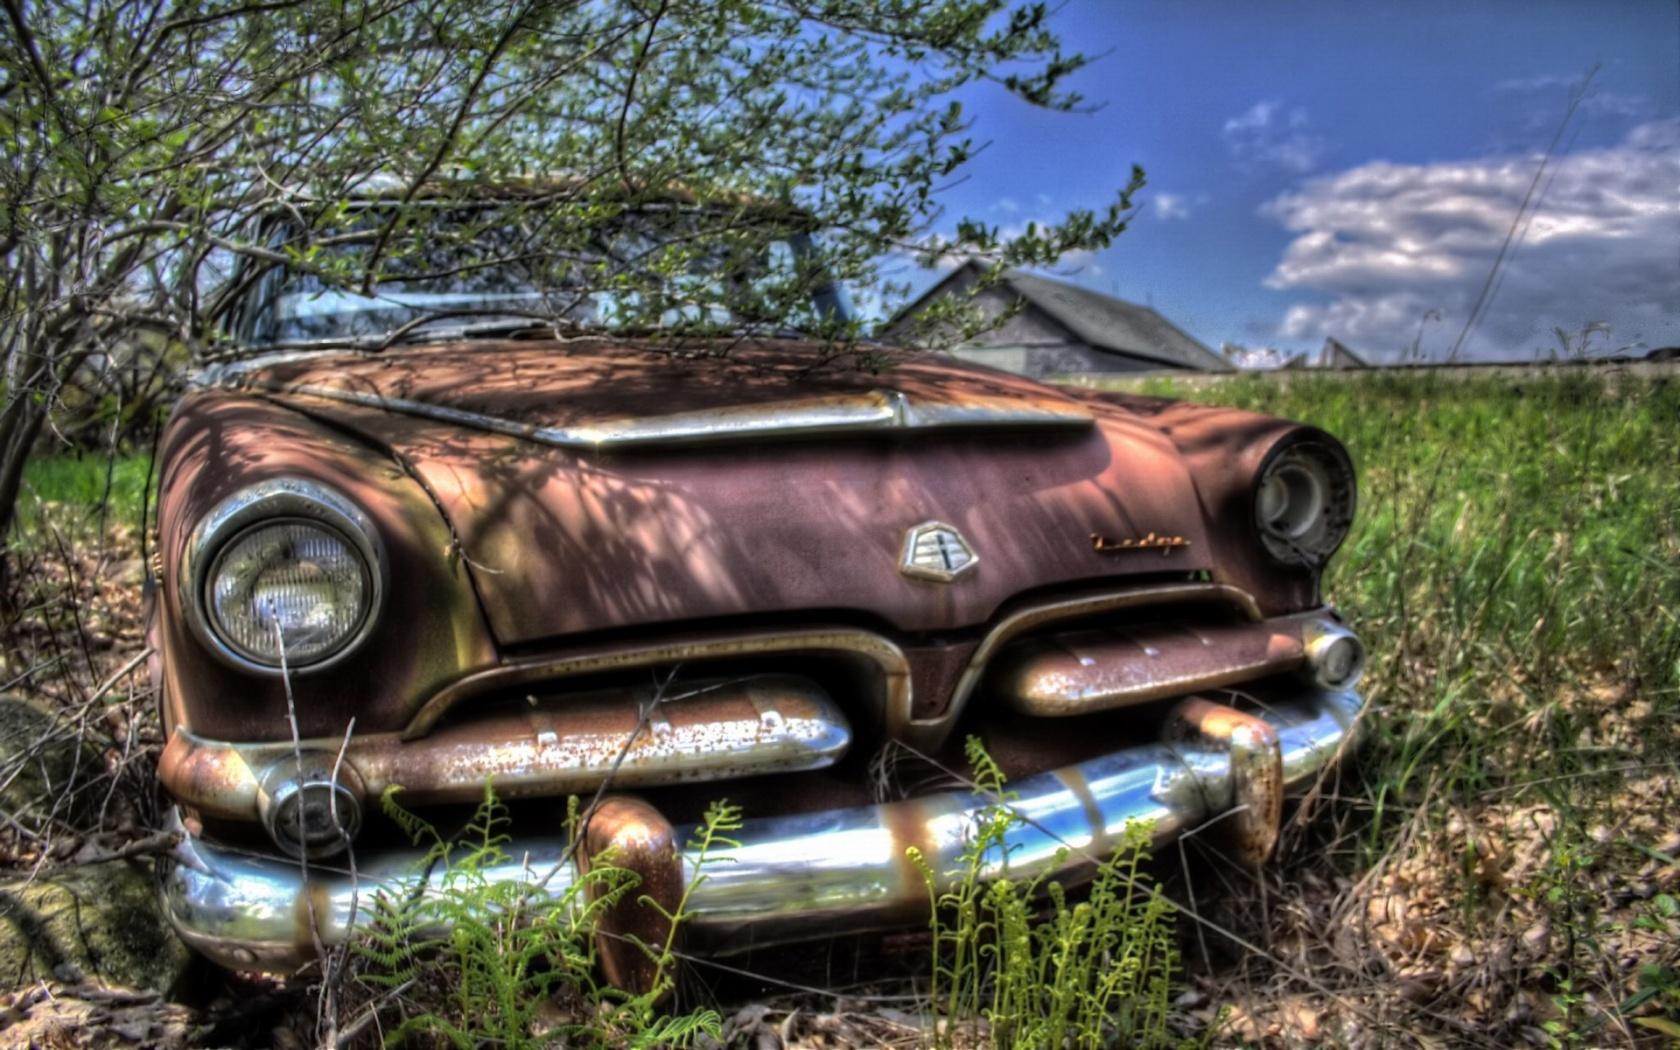 Auto World in photo: Pictures of old abandoned cars